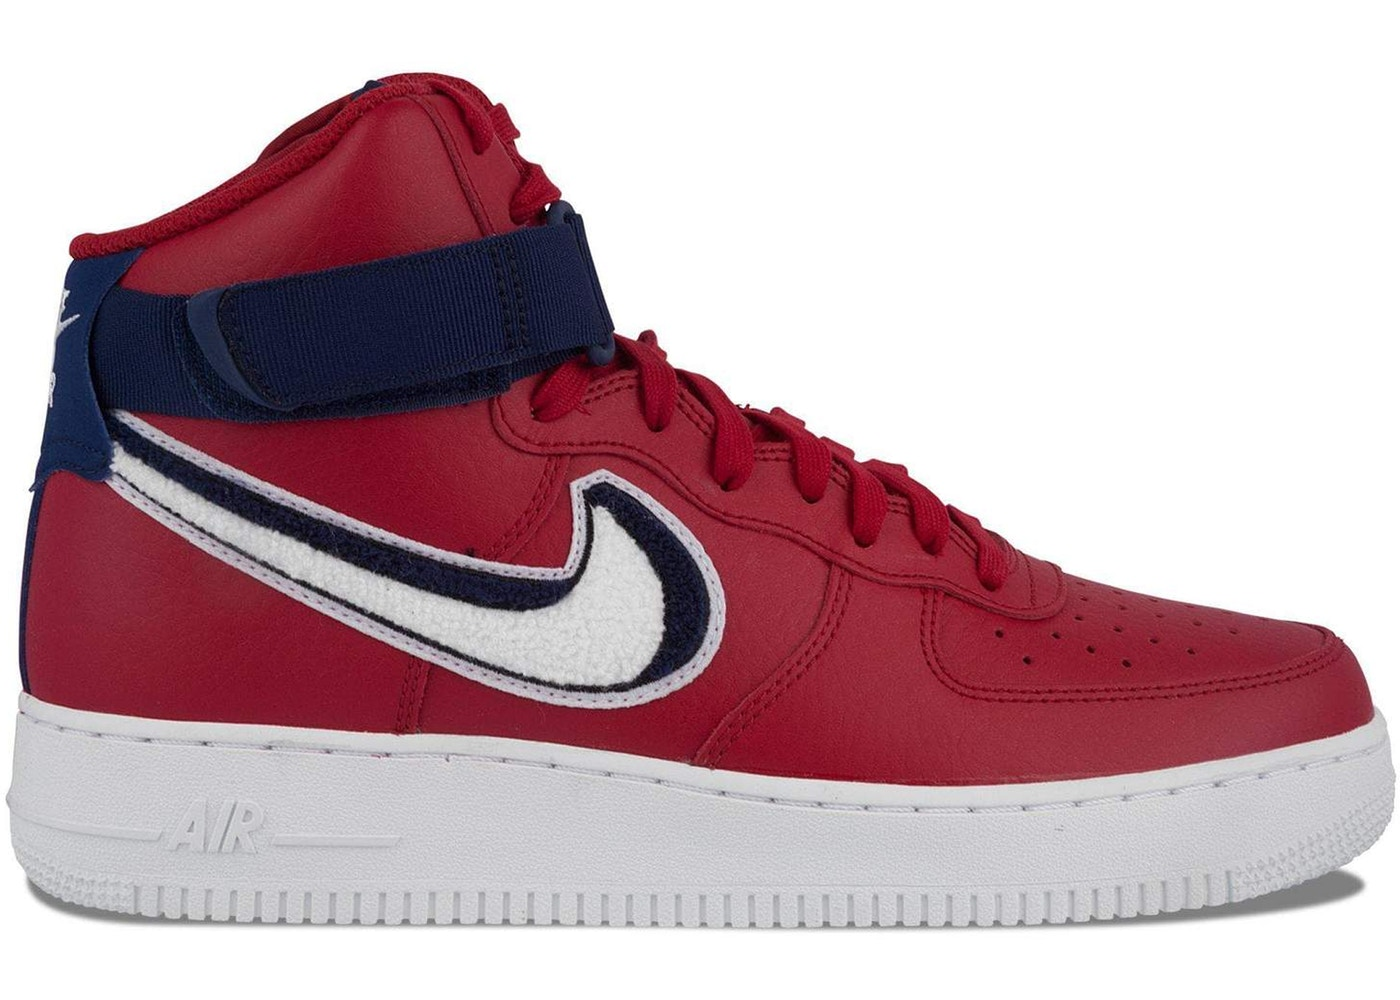 newest e4129 afa8a HypeAnalyzer · Air Force 1 High 3D Chenille Swoosh Red White Blue